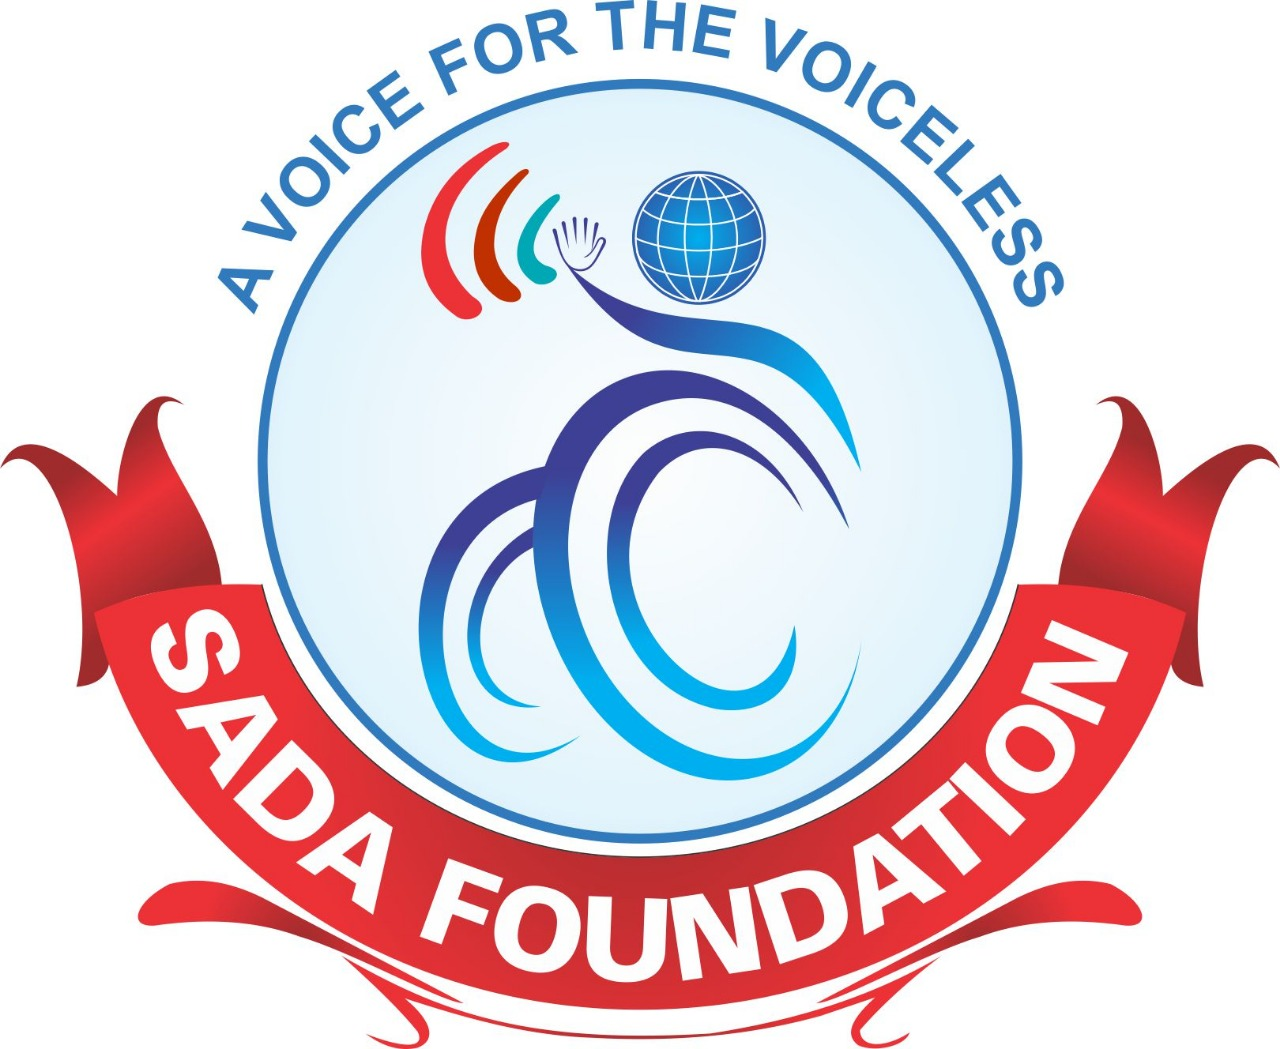 sada foundation